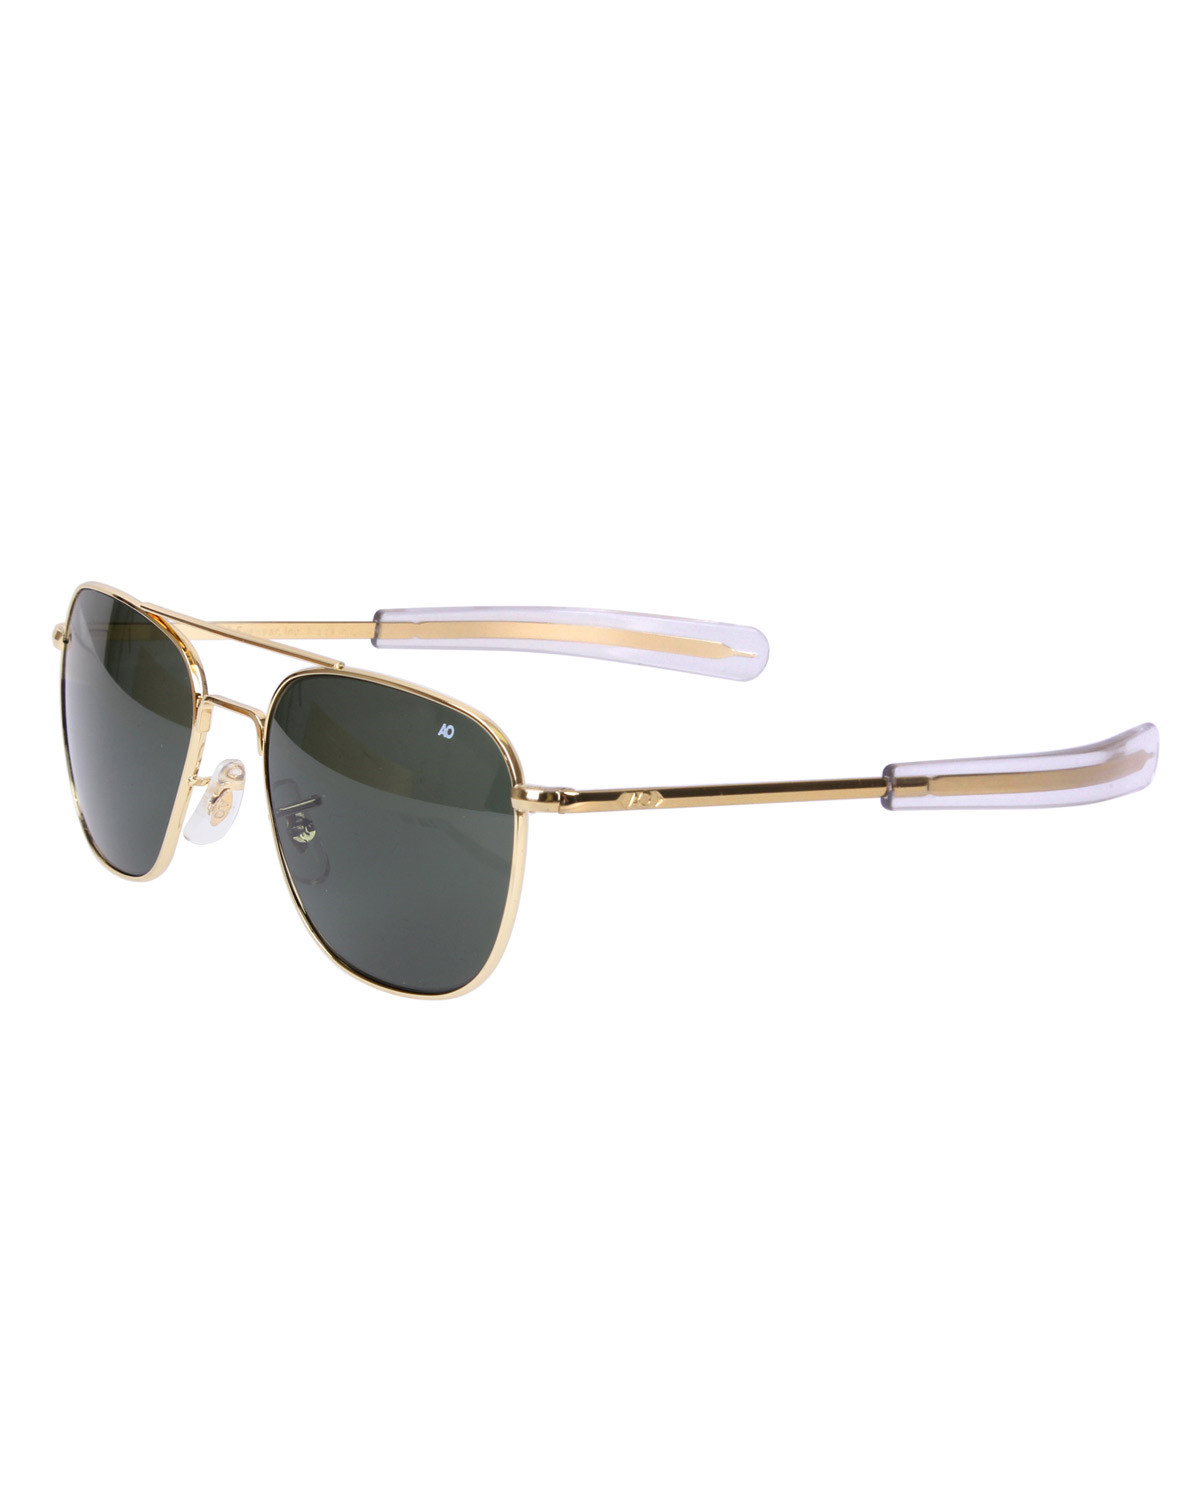 Image of   Rothco Pilots Solbriller American Optical Original (Guld m. Grønt Glas, One Size)